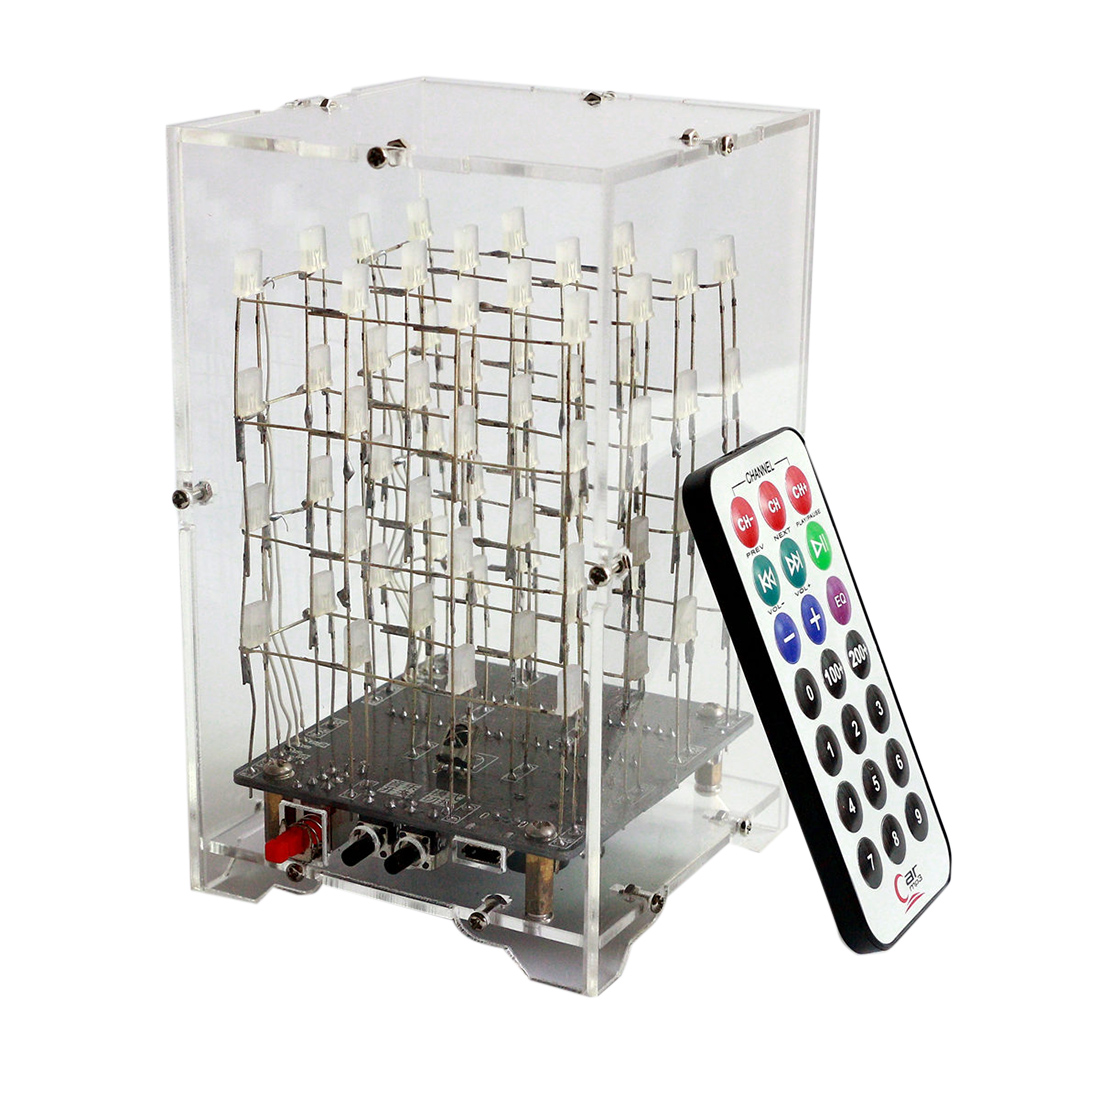 Surwish DIY Welding Electronic Bulk Parts Music Light Cube Kit (Remote Control, Seven Colours Changing, USB Power Supply)